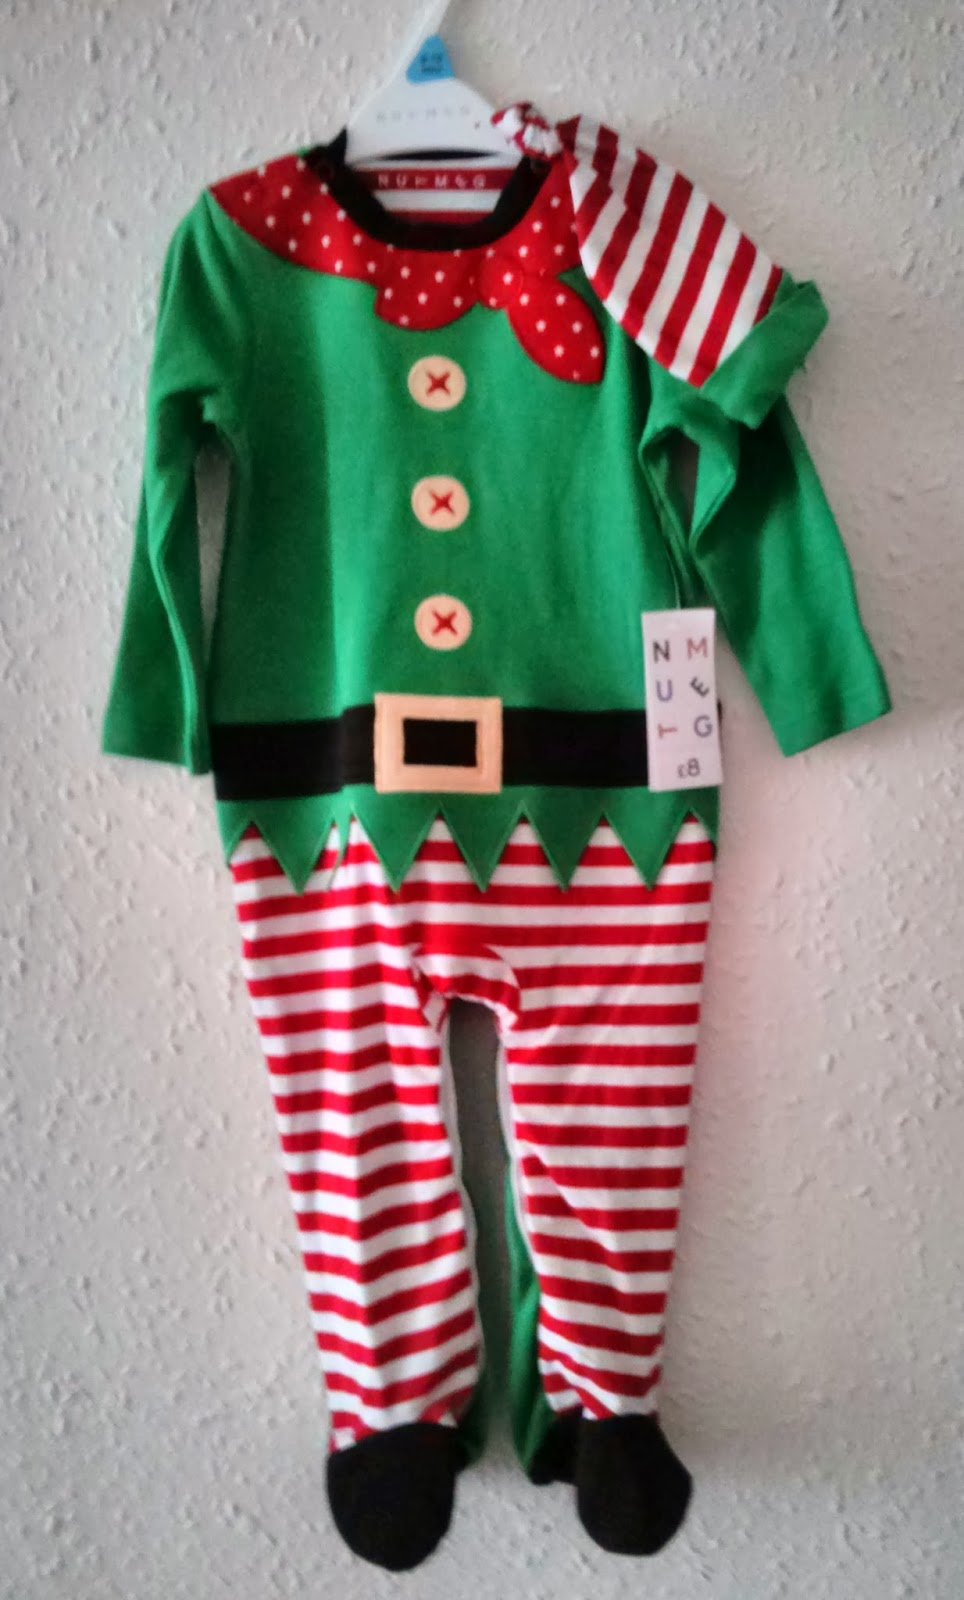 Baby Fancy Dress At Christmas The Tiger Tales Expat